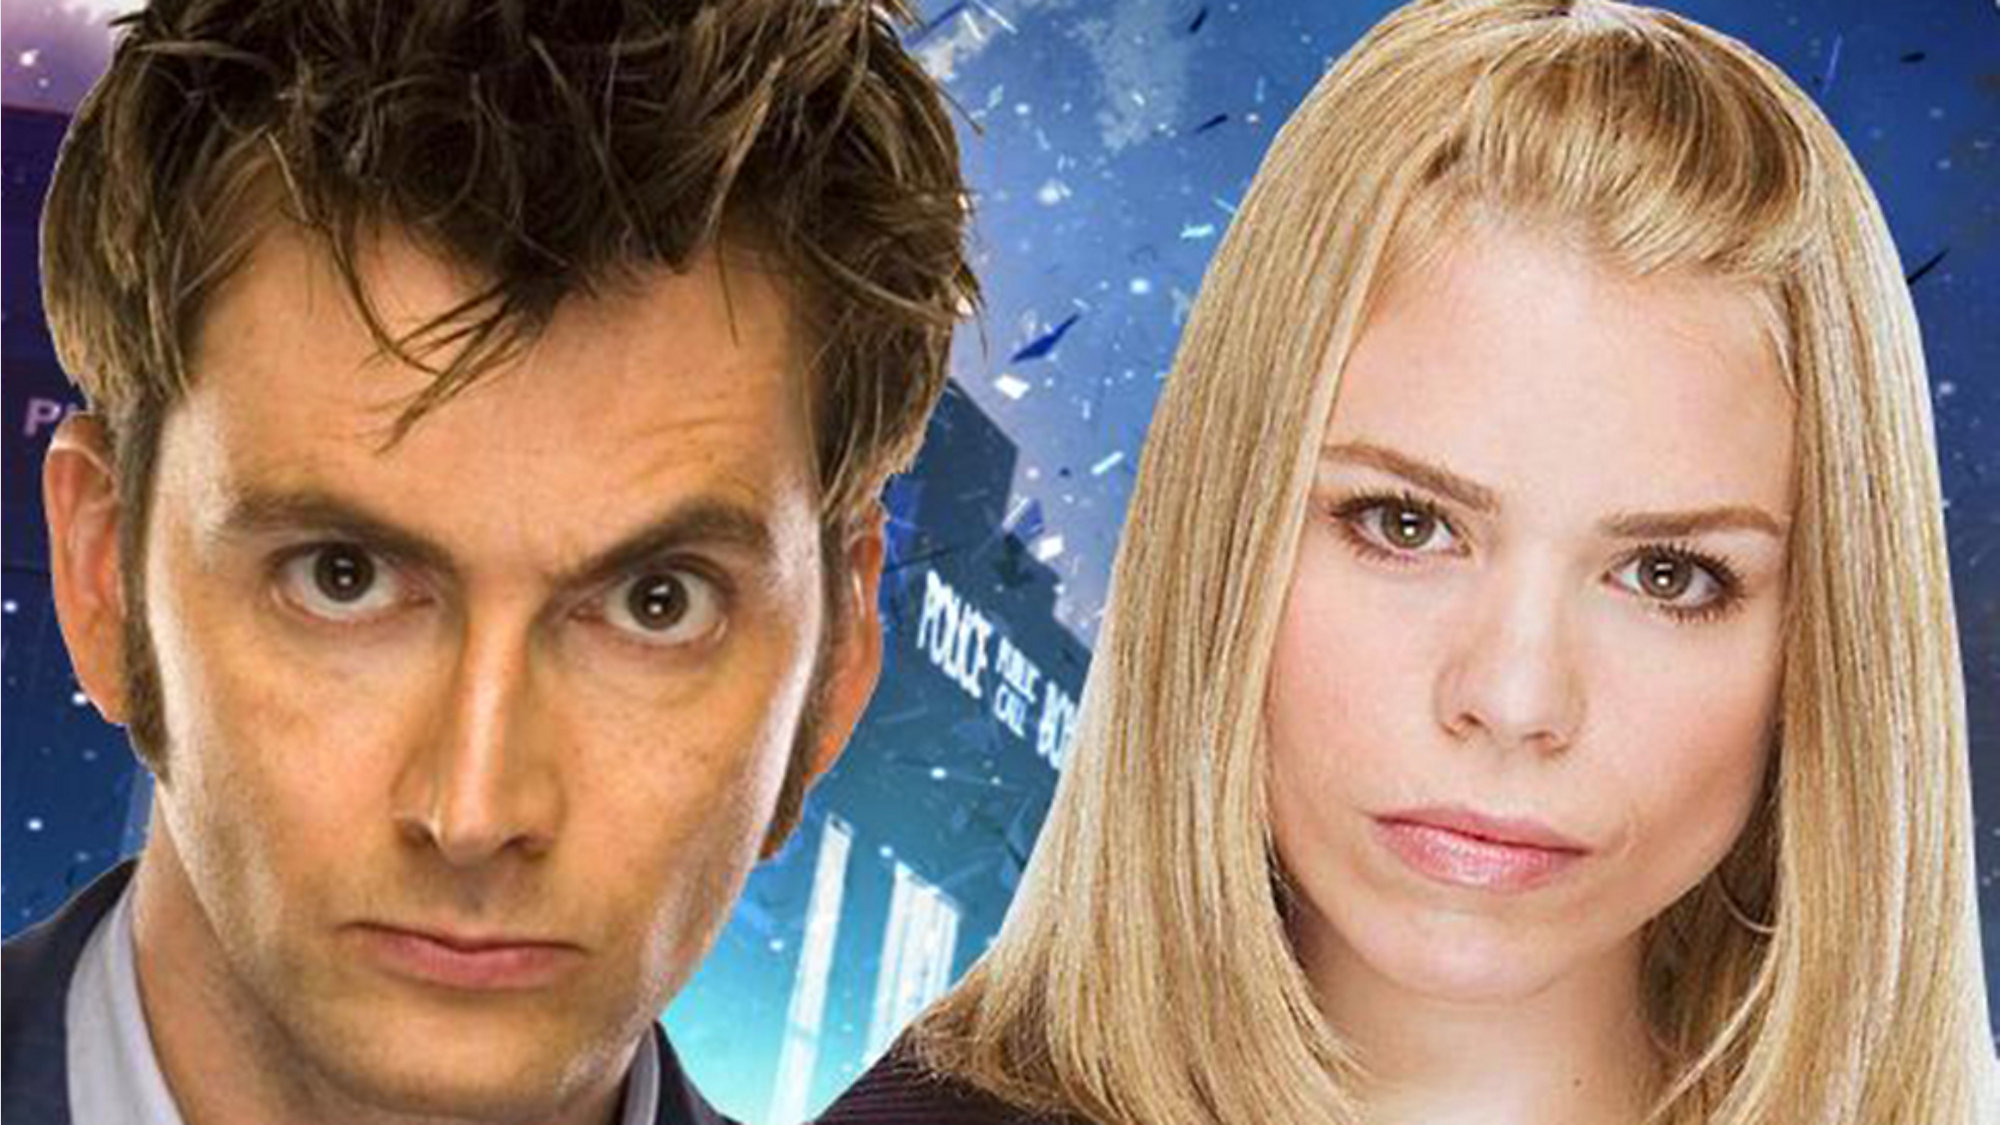 David Tennant, Billie Piper to Reunite at MegaCon Orlando